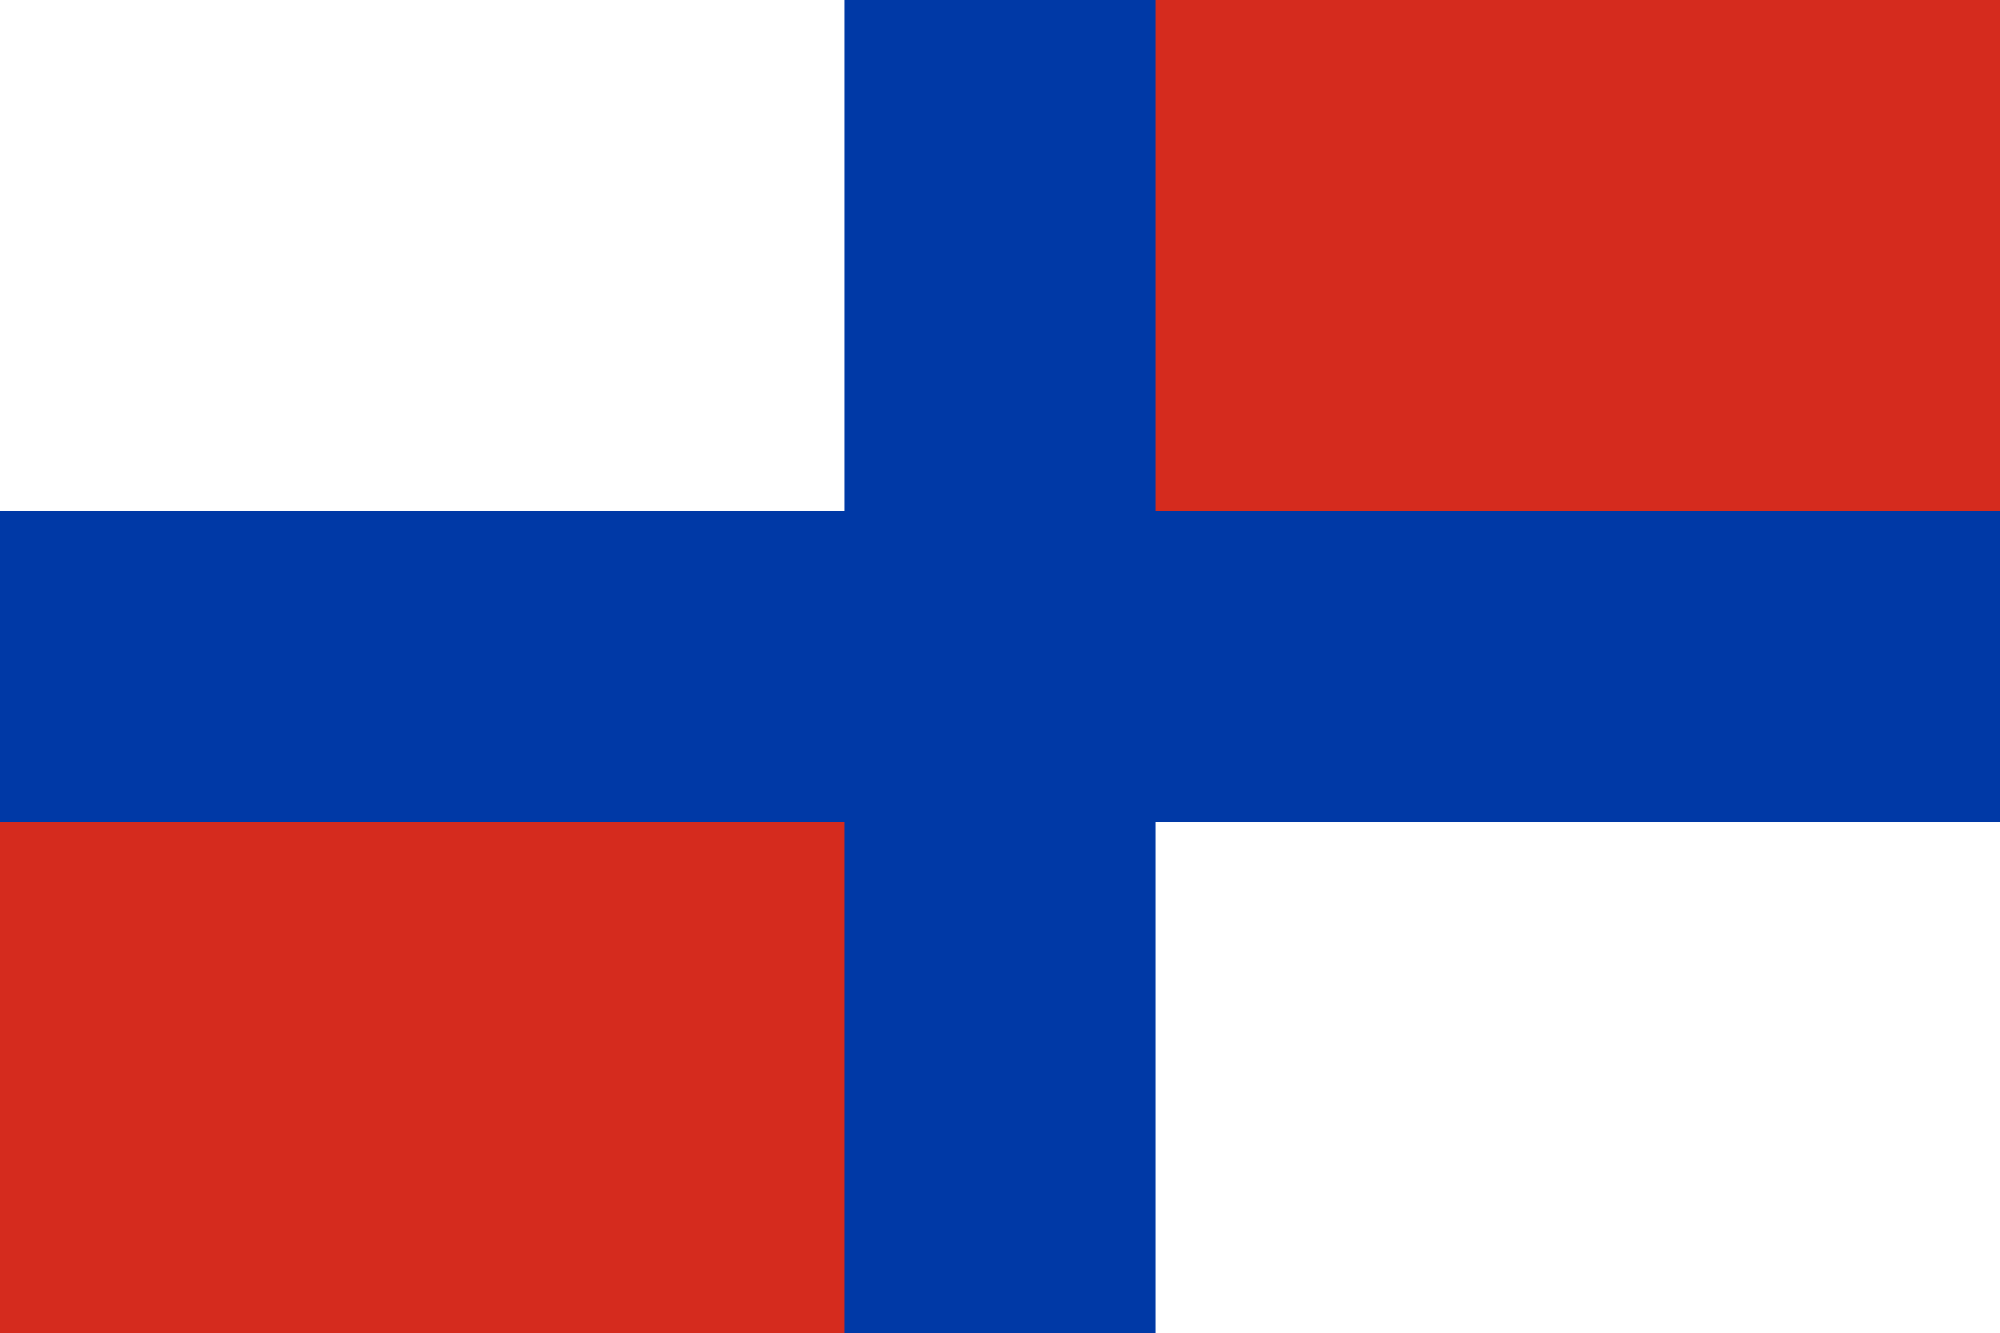 russia 1668 russian flags pinterest